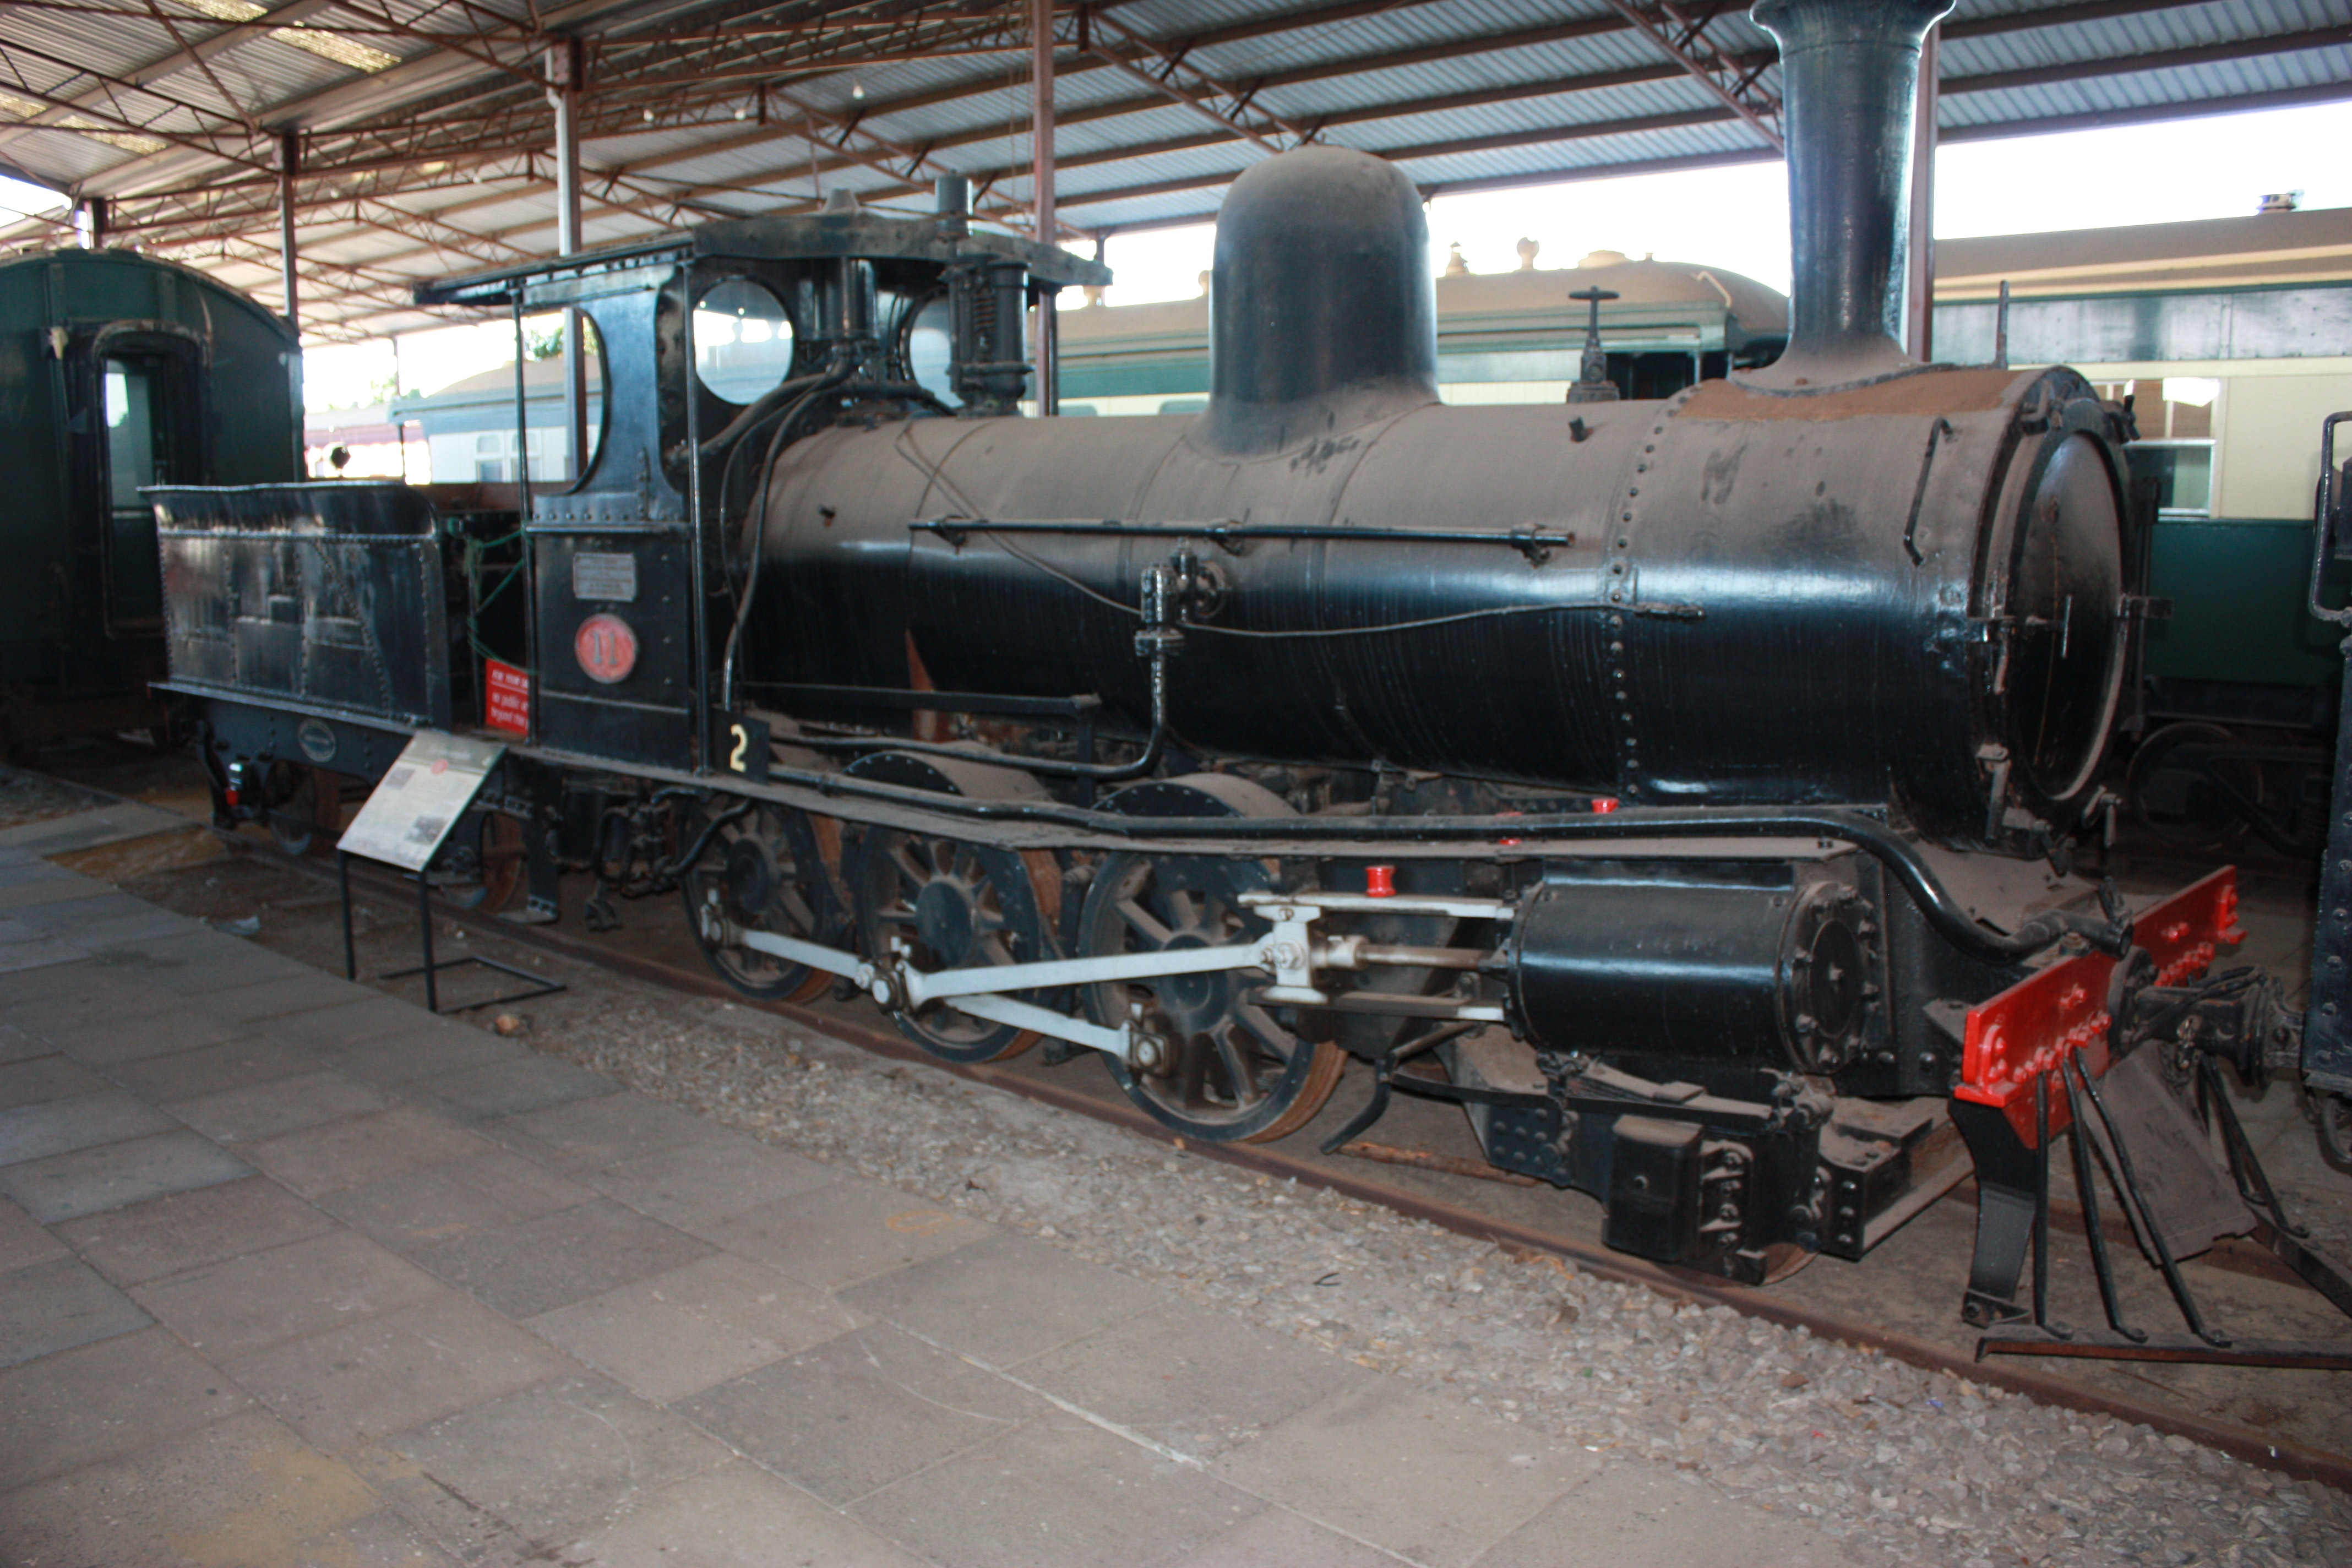 A11 at Bassendean Railway Museum